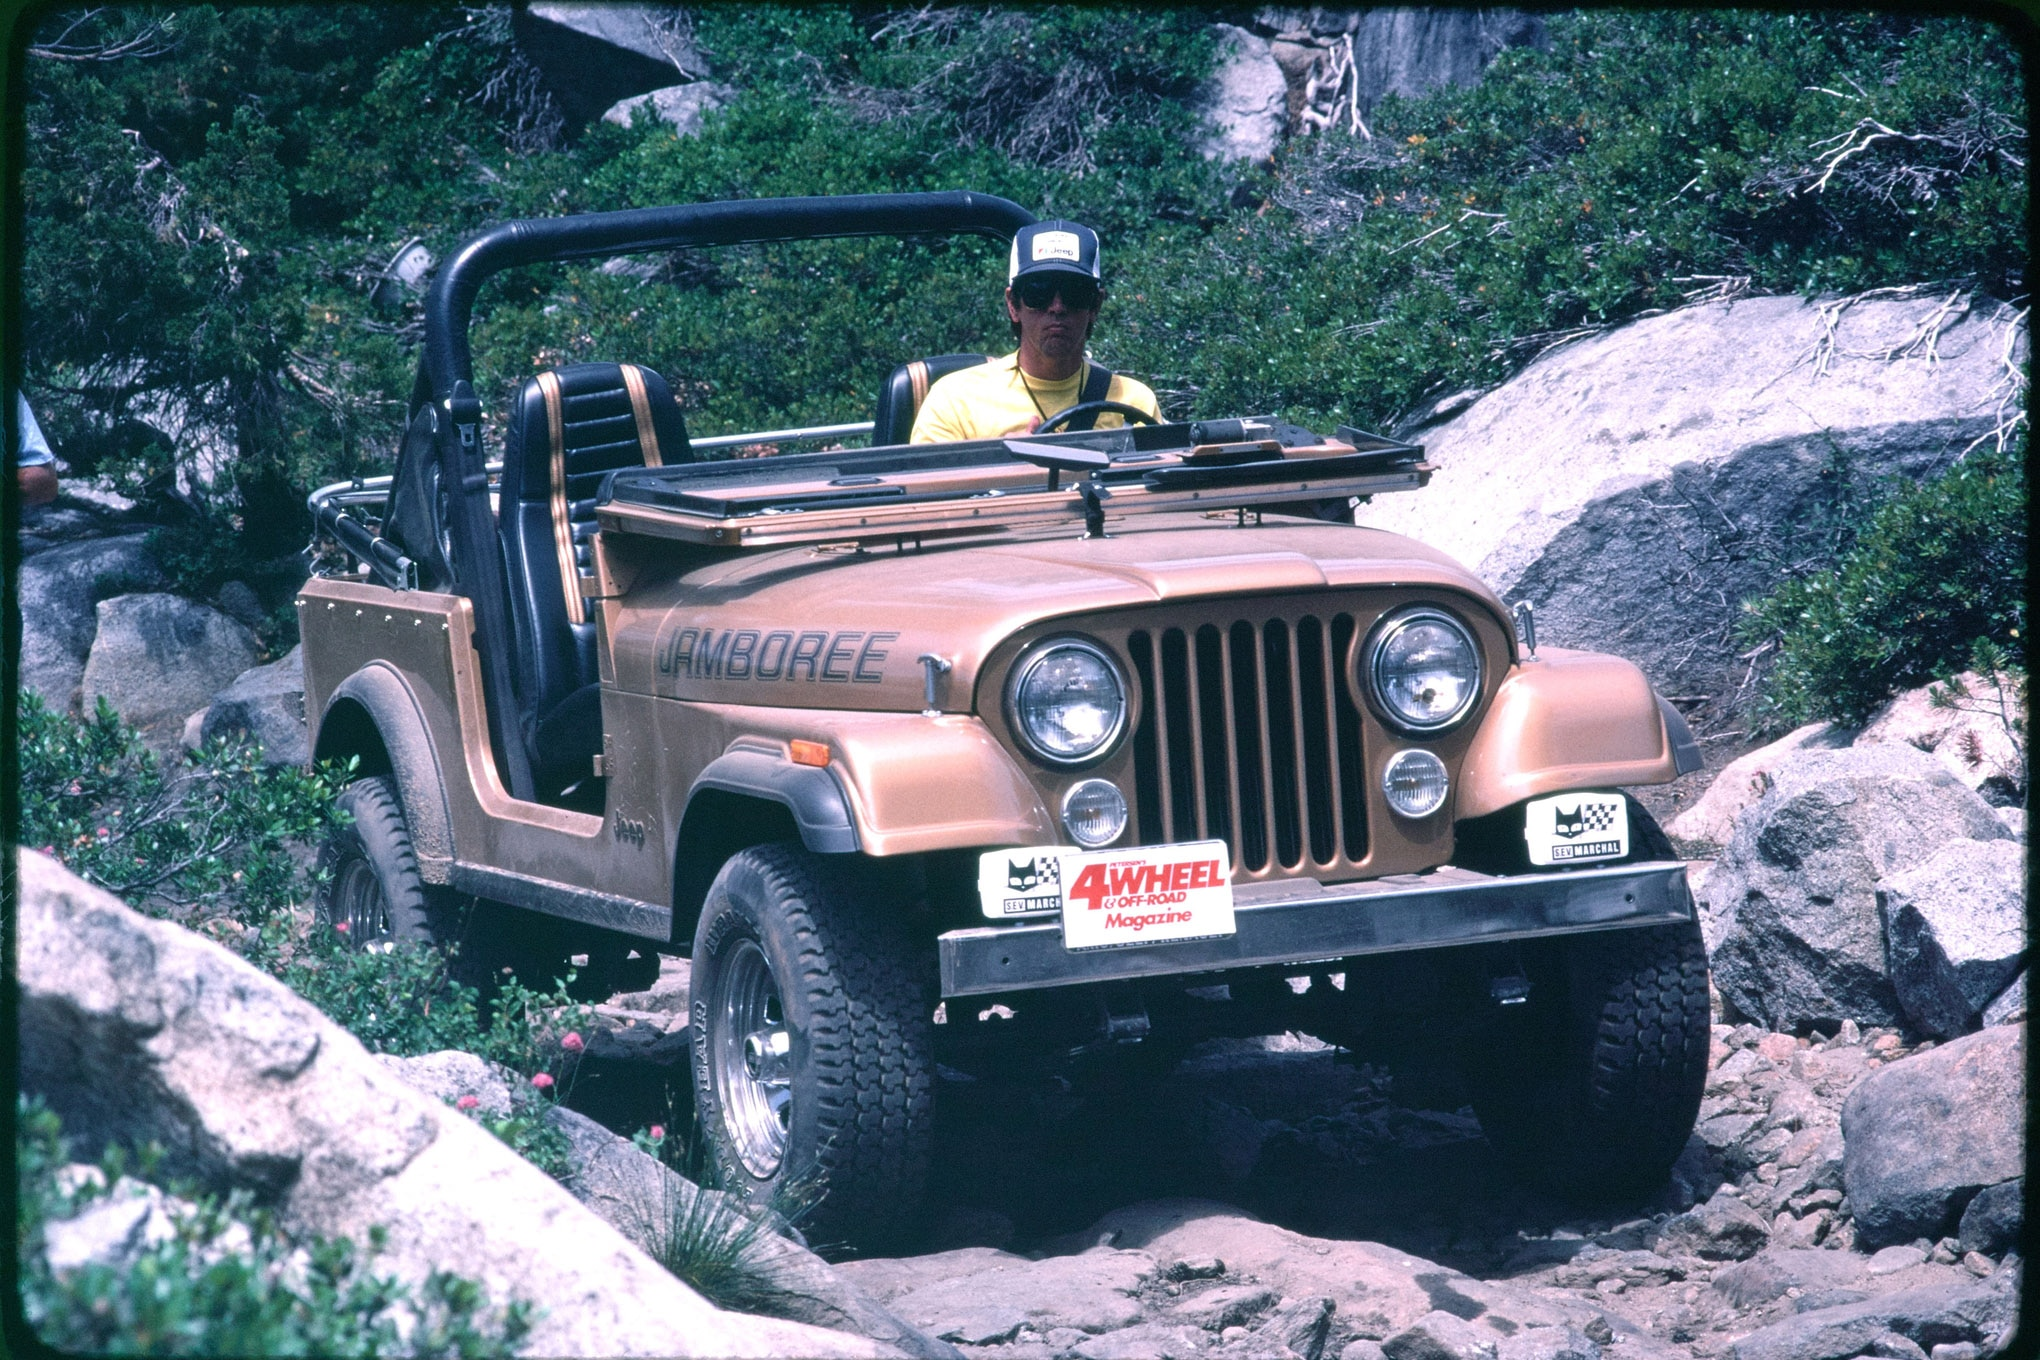 010 1982 cj7 jamboree 4wor trail vintage shot